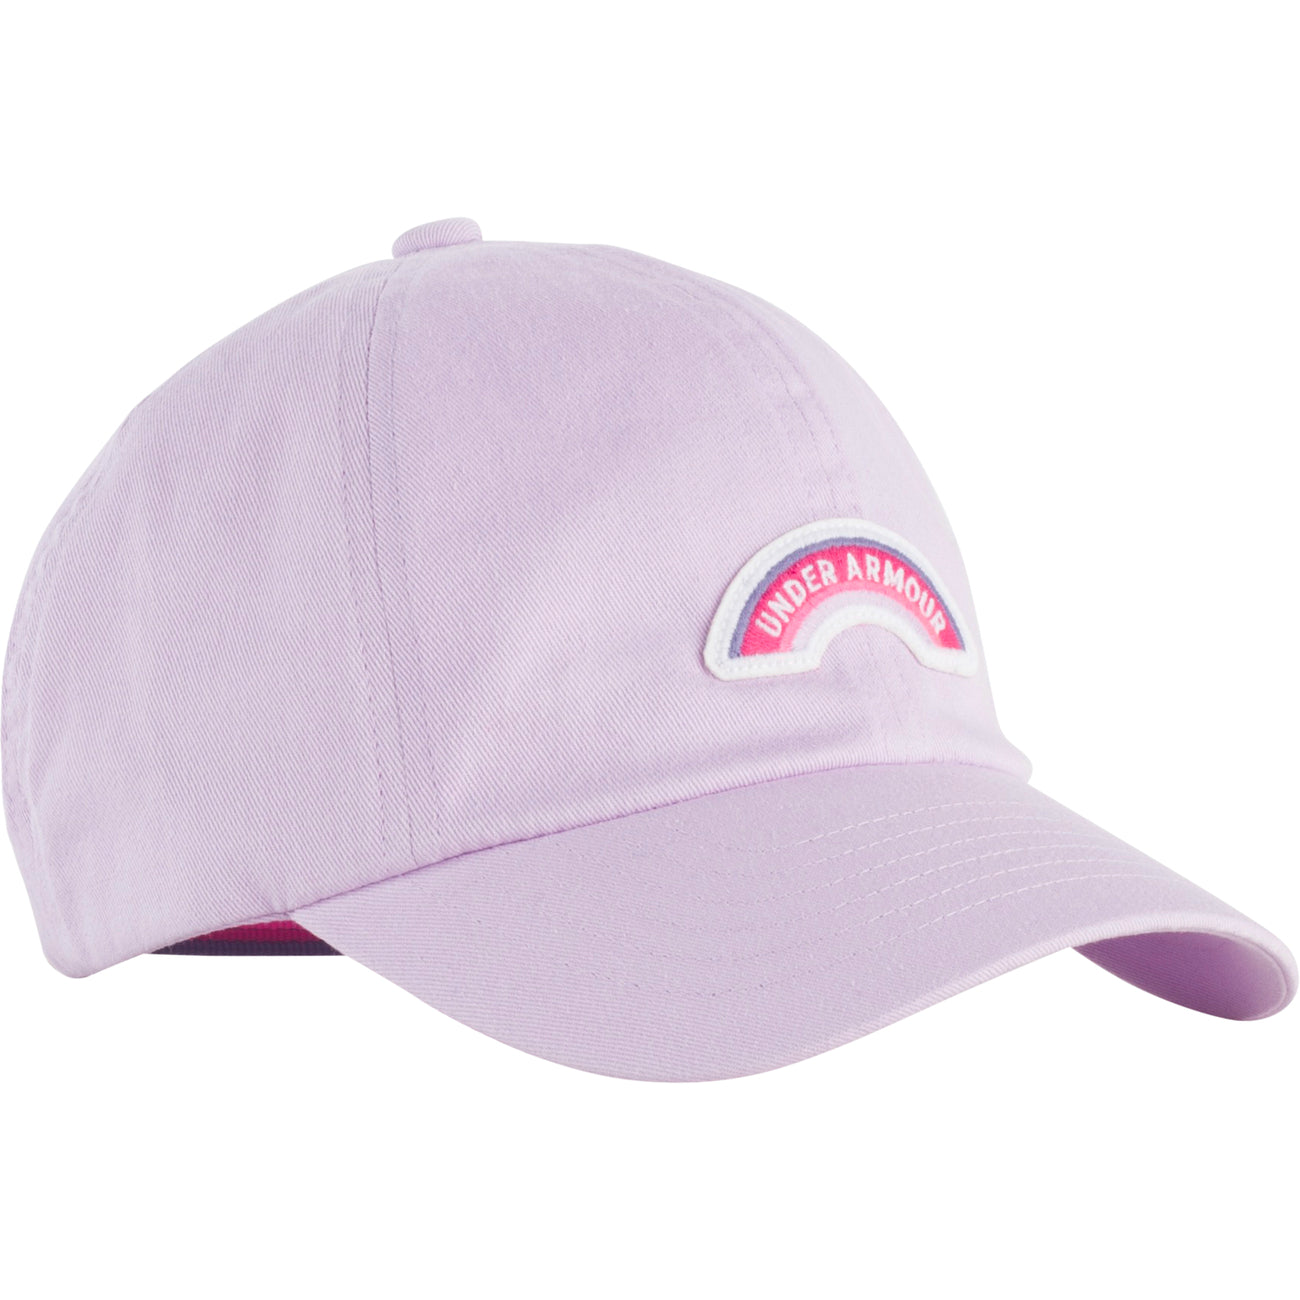 Under Armour Kids Purple Ace Cap